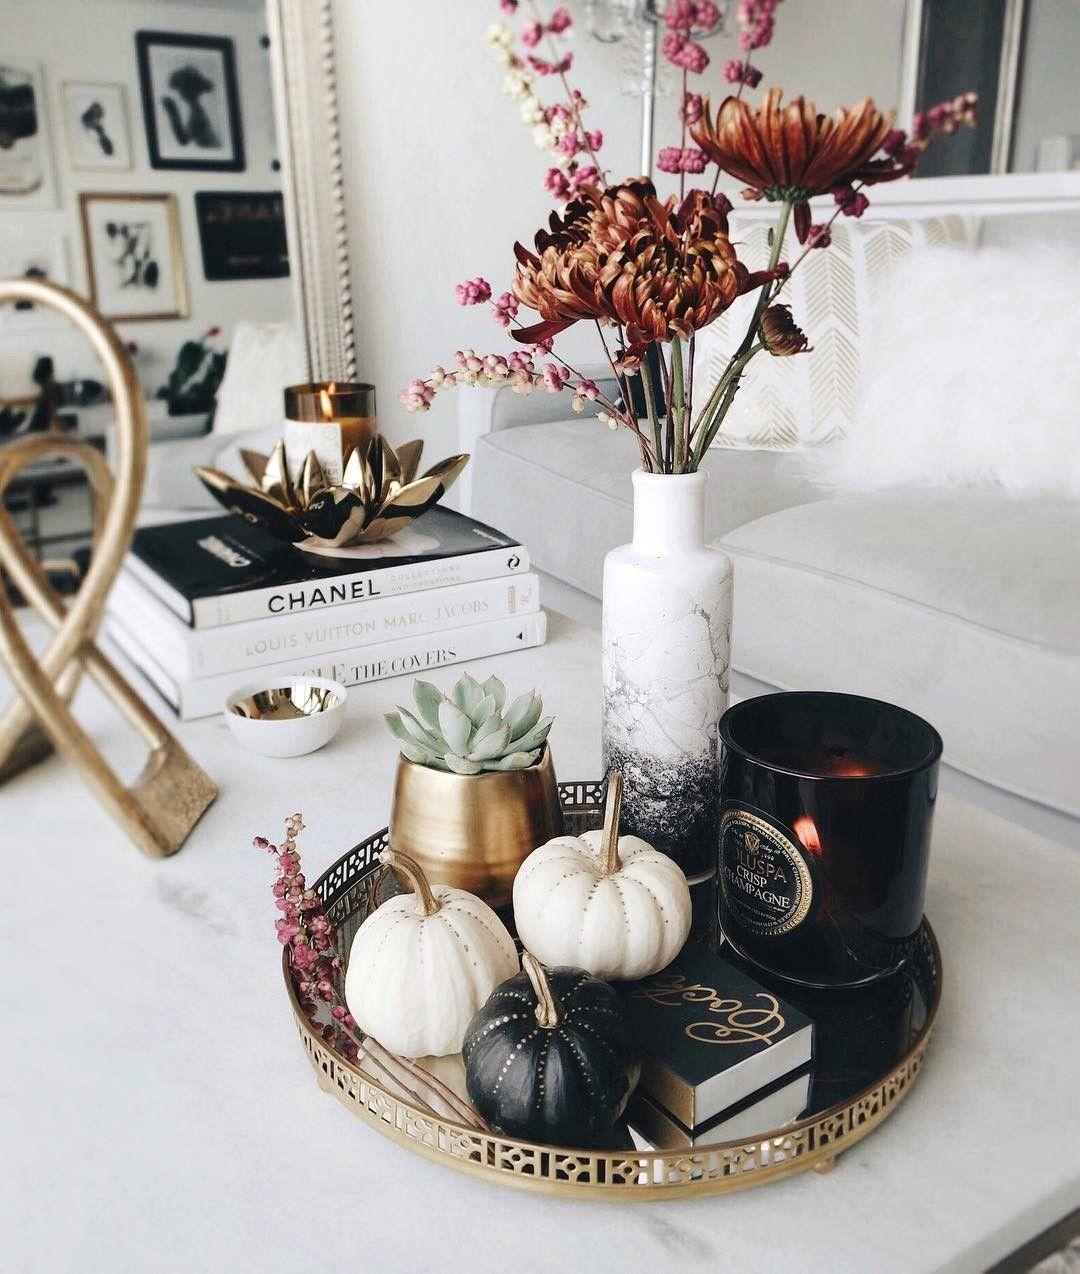 The perfect moody coffee table styling for Halloween and